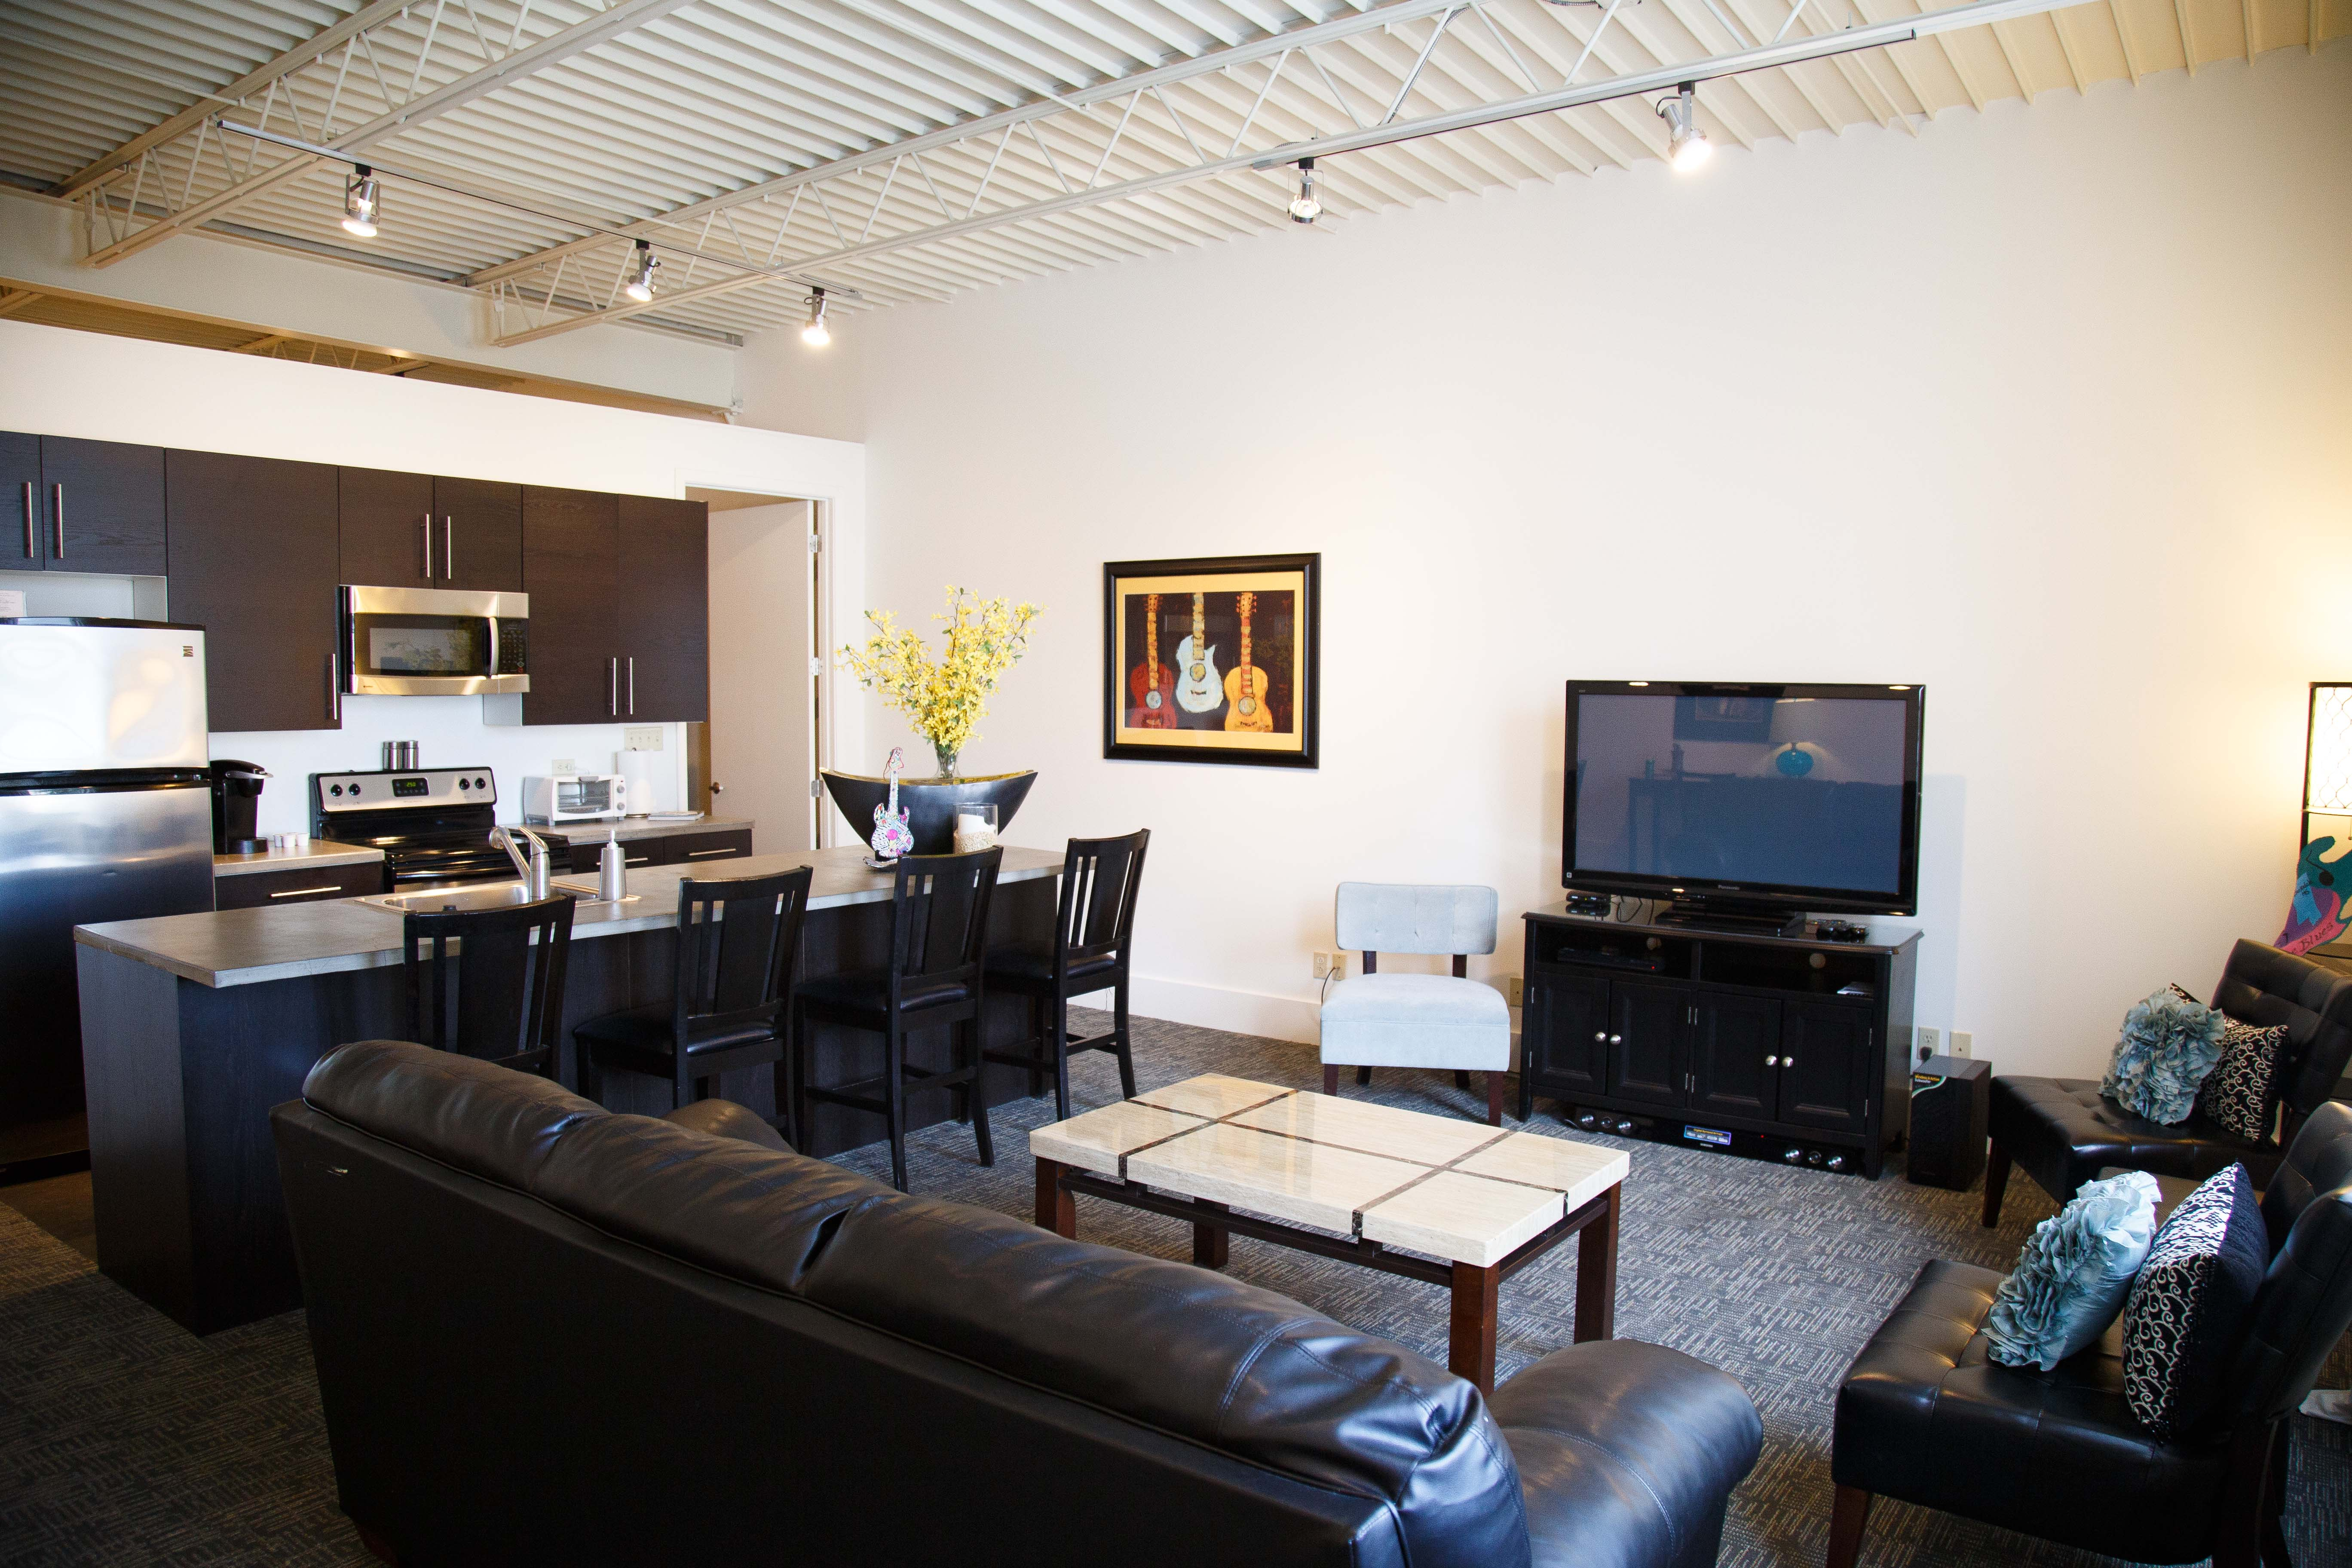 The Lofts at the Five and Dime – Clarksdake, MS